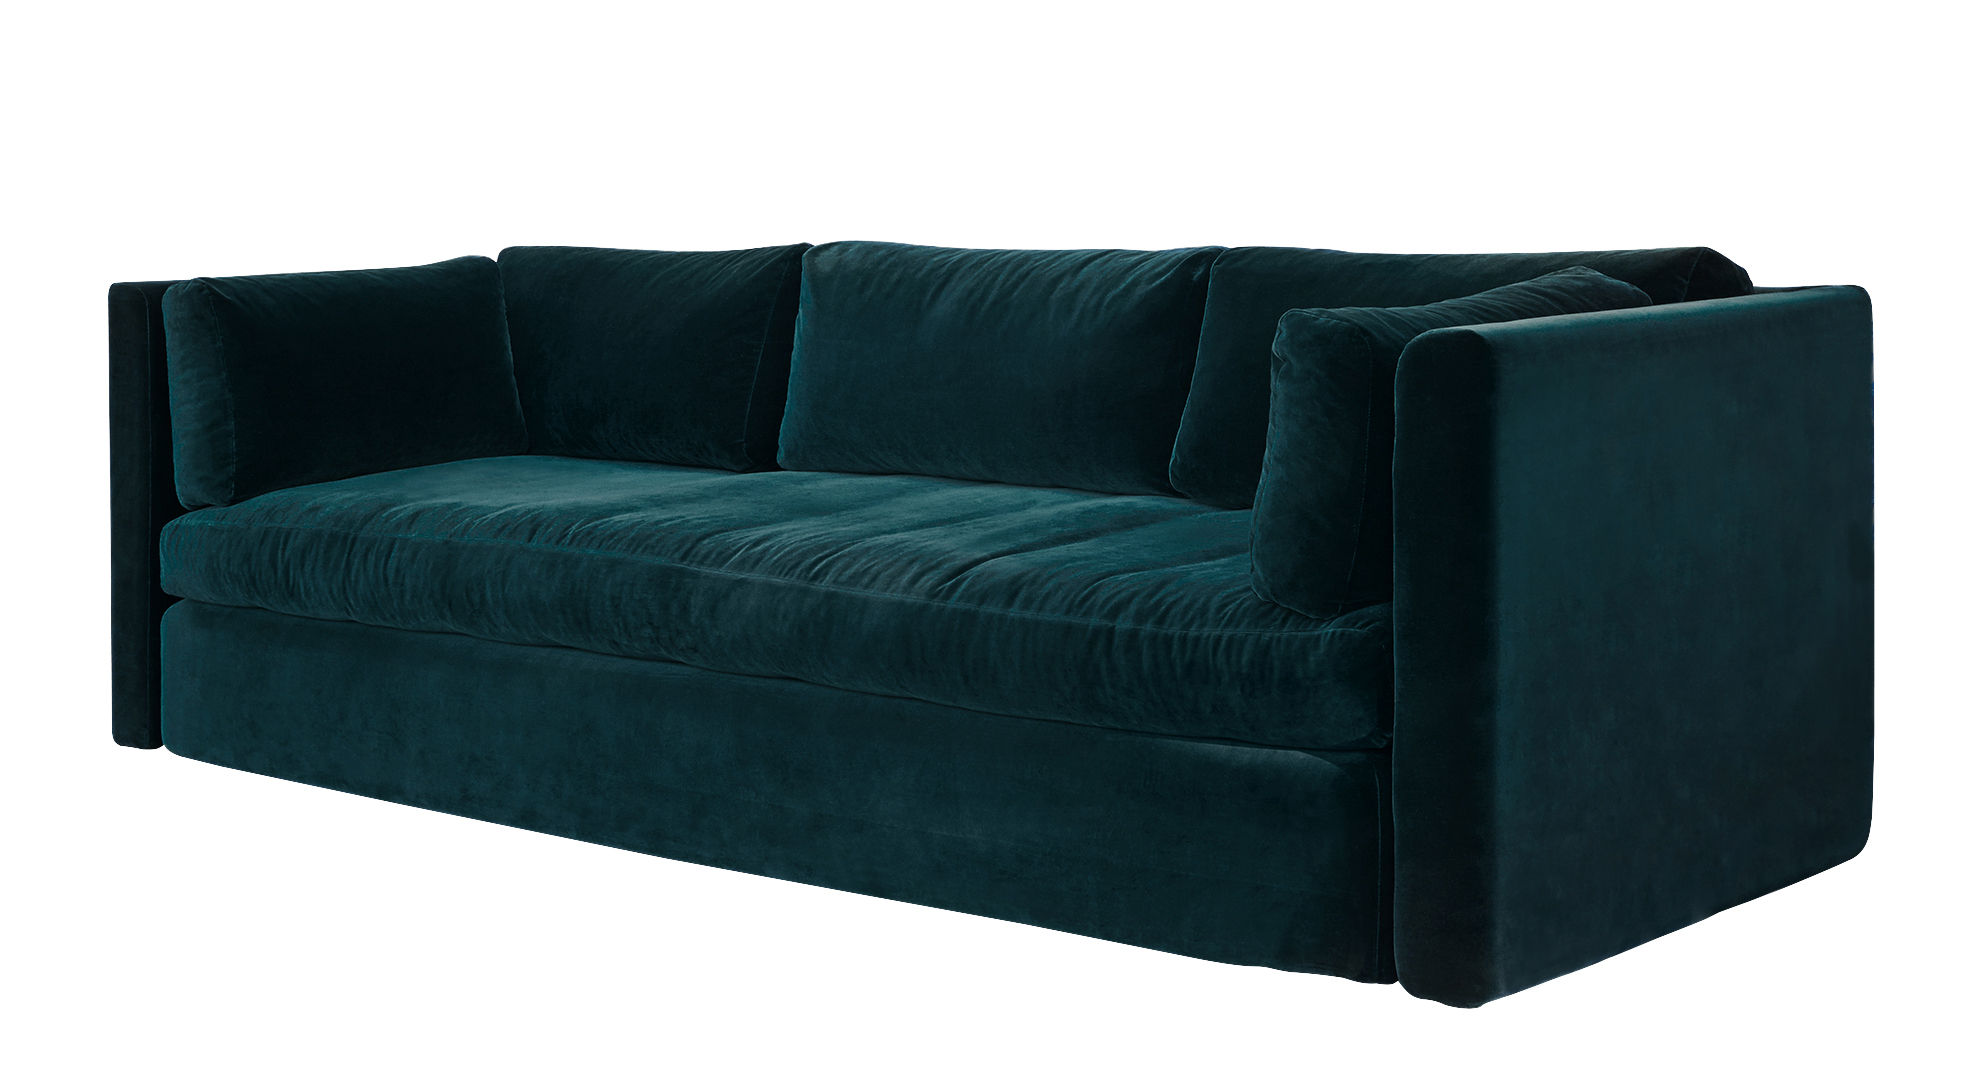 Furniture - Sofas - Hackney Straight sofa - / 3 seats - L 254 cm by Hay - Emerald green - Down, Polyurethane foam, Tissu Harald, Wood